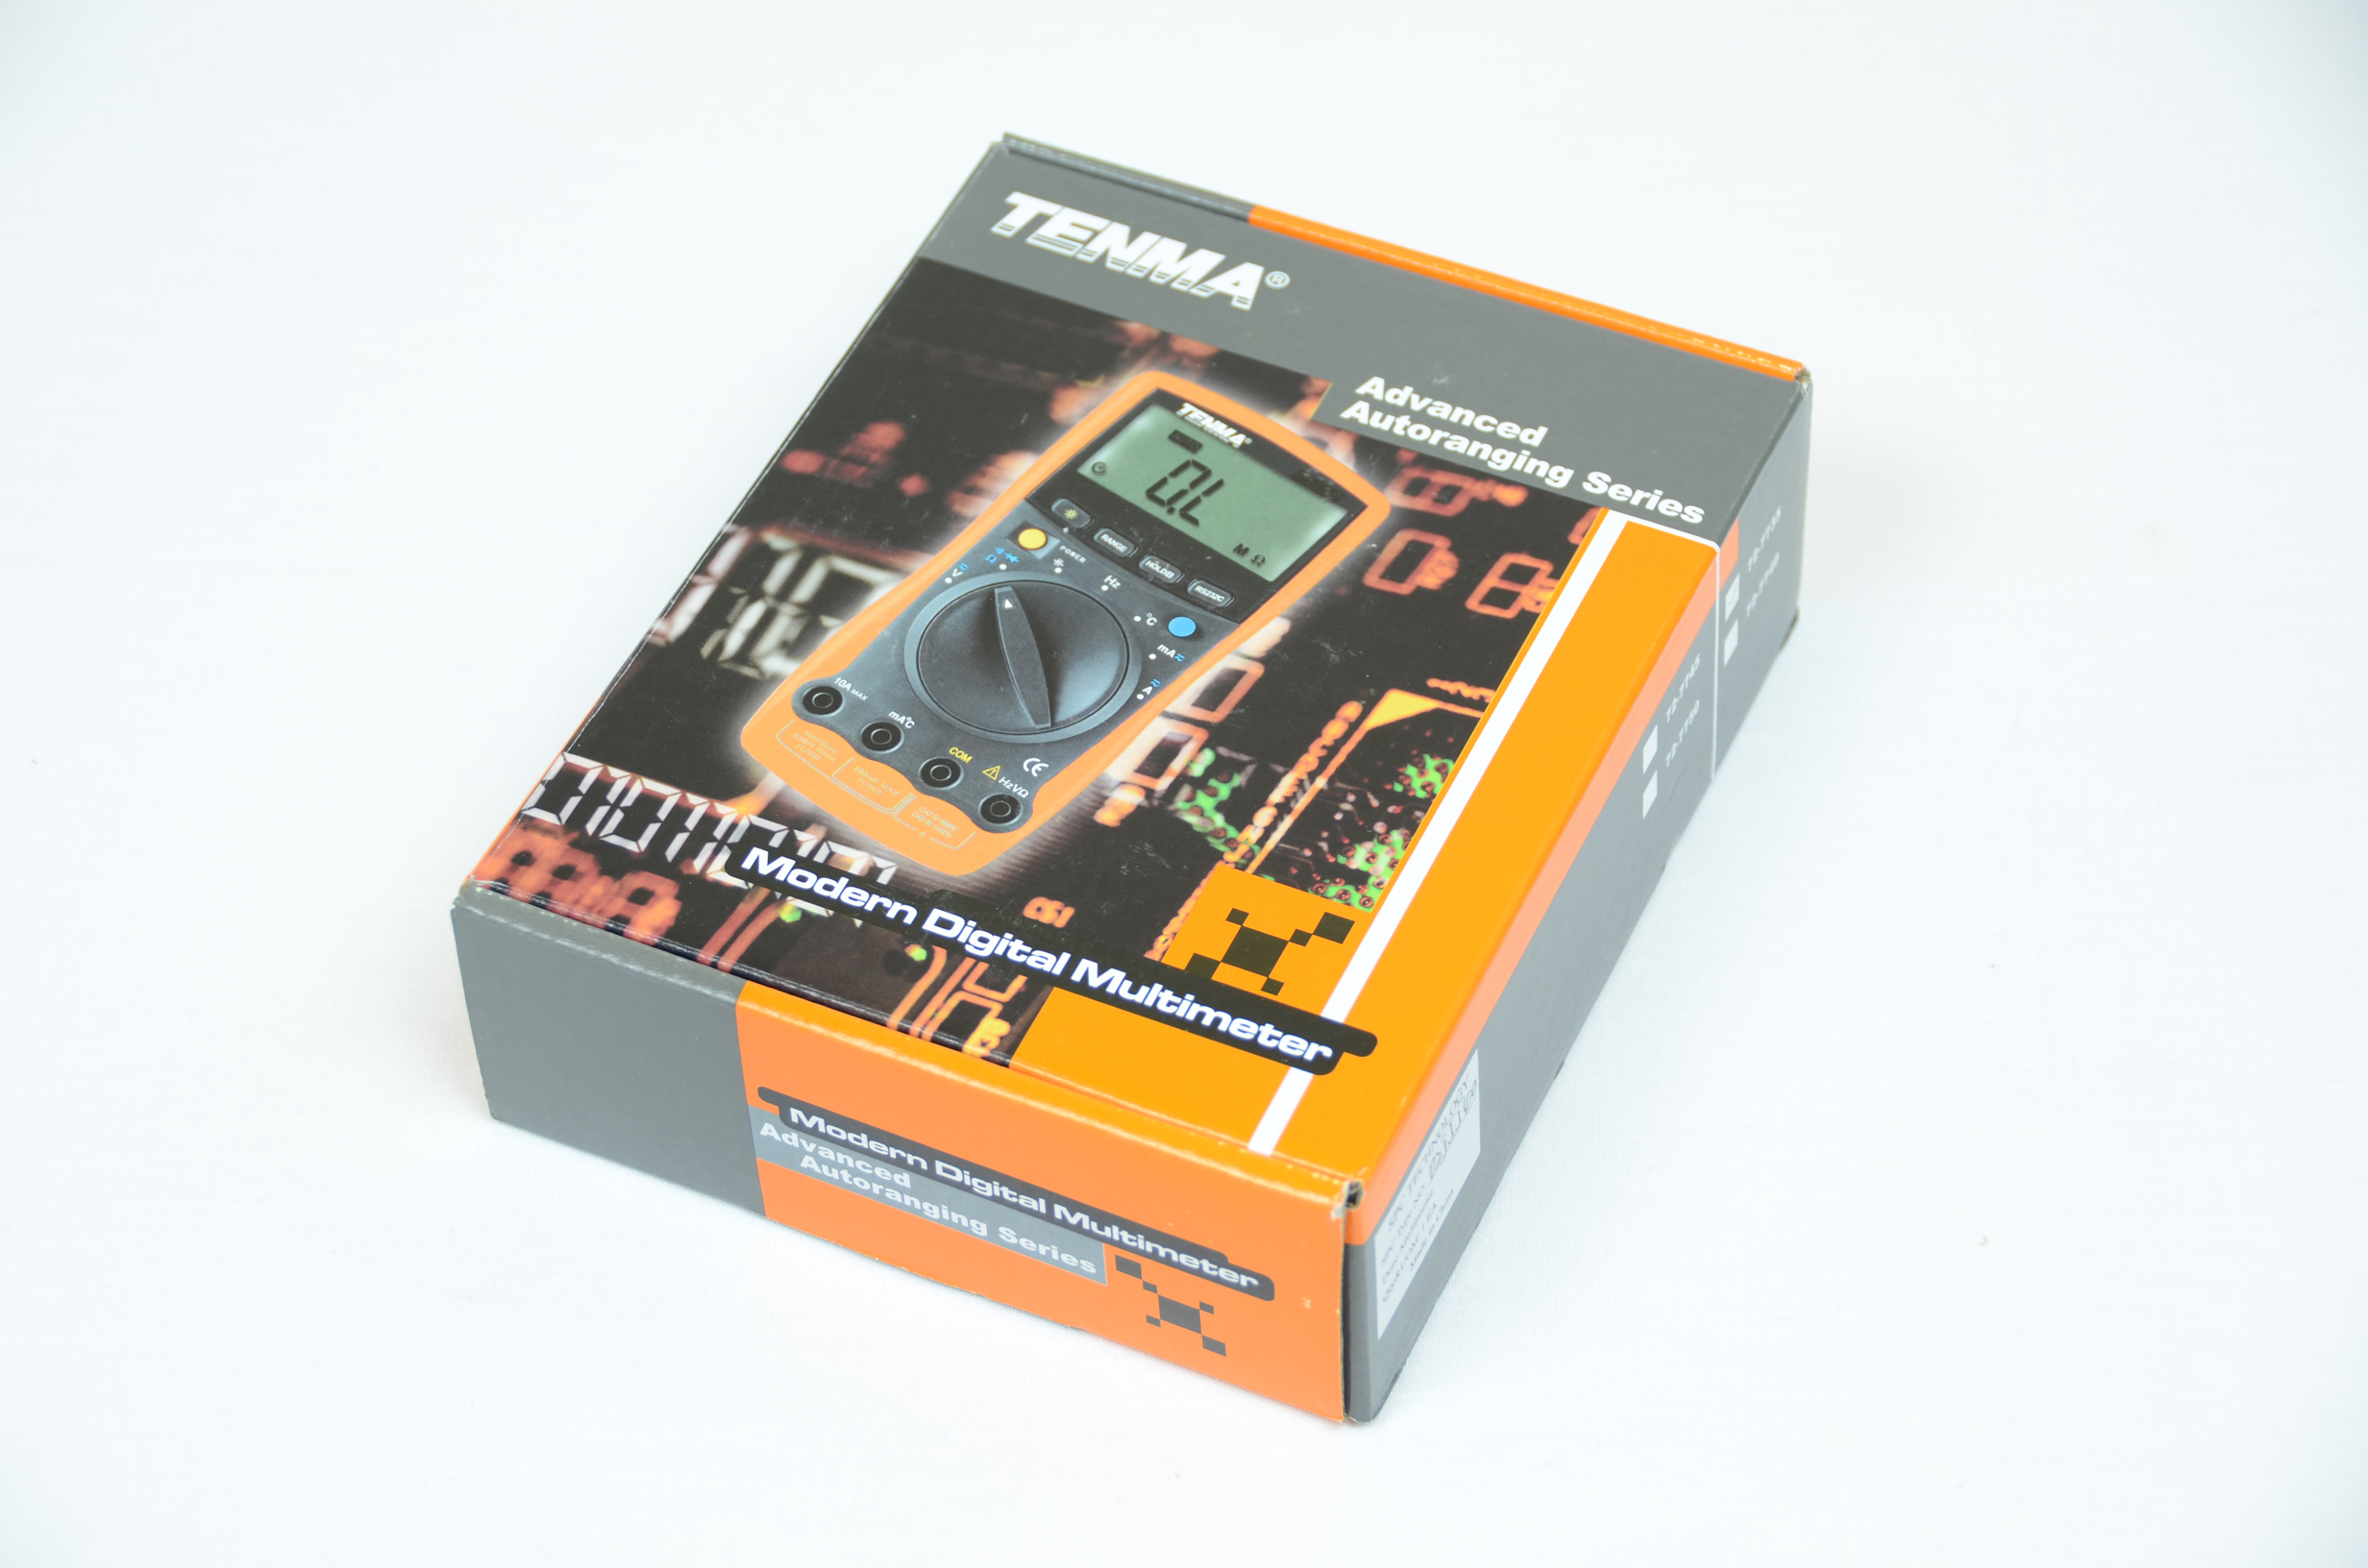 Tenma 72 7735 Unpacking Pyroelectro News Projects Tutorials Simple Touch Screen Interface Schematic The Multimeter Box Itsself Is Typical Of Most Electronics Products Flashy Images All Around It Showing Off What Looks Like And Exclaiming Nice